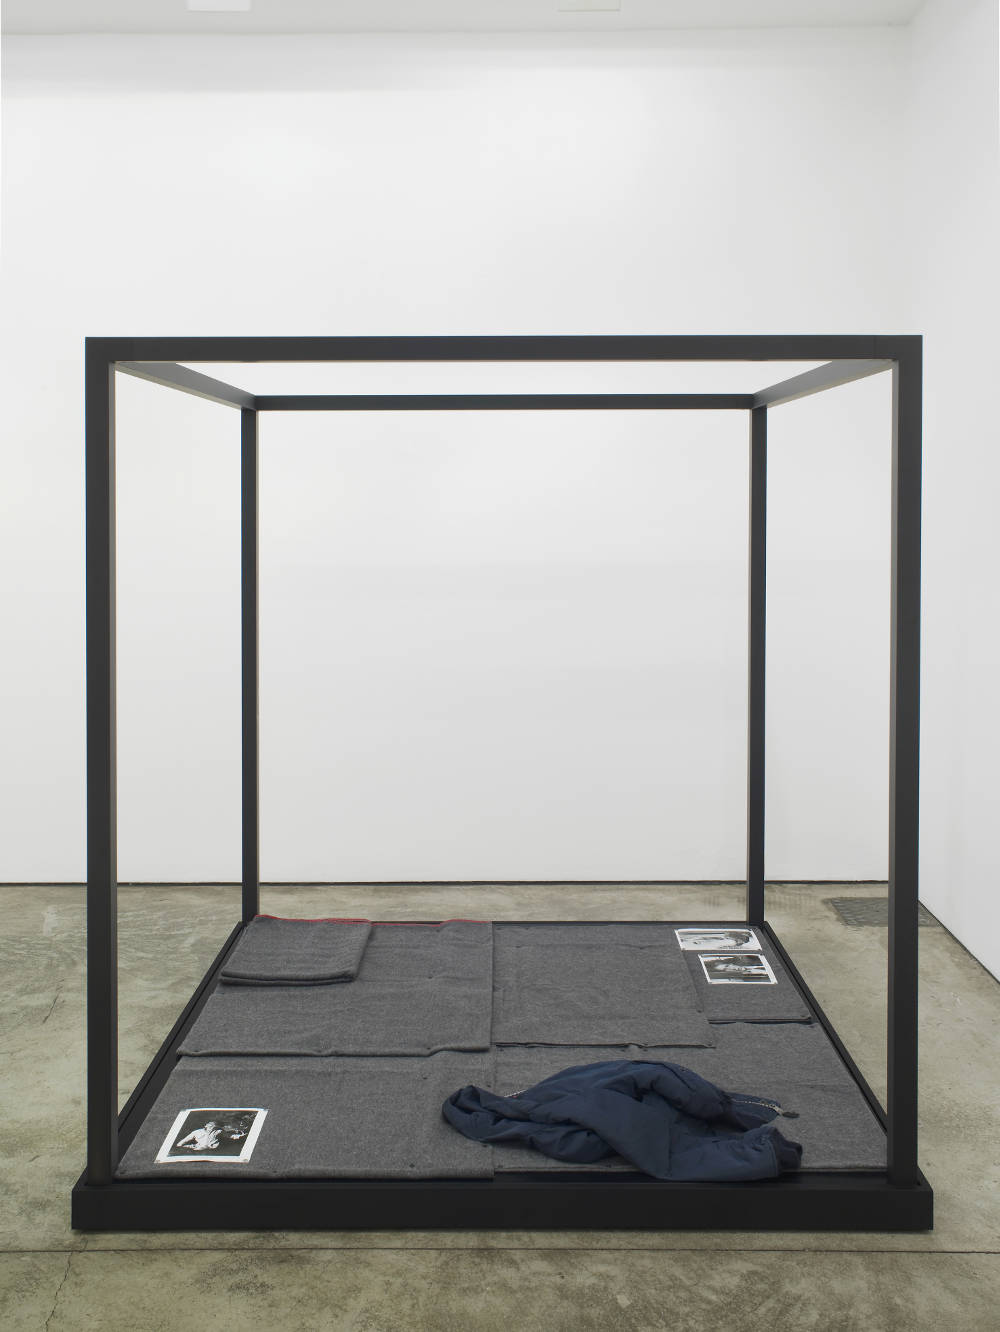 Tom Burr, Regarding the Recent Attack on the Body (my aging blue bomber), 2017. Grey military style blankets, black upholstery tacks, silver gelatin  lm still prints from 'Equus' (1977), steel push pins, powder coated aluminium, painted plywood 184 x 180 x 180 cm